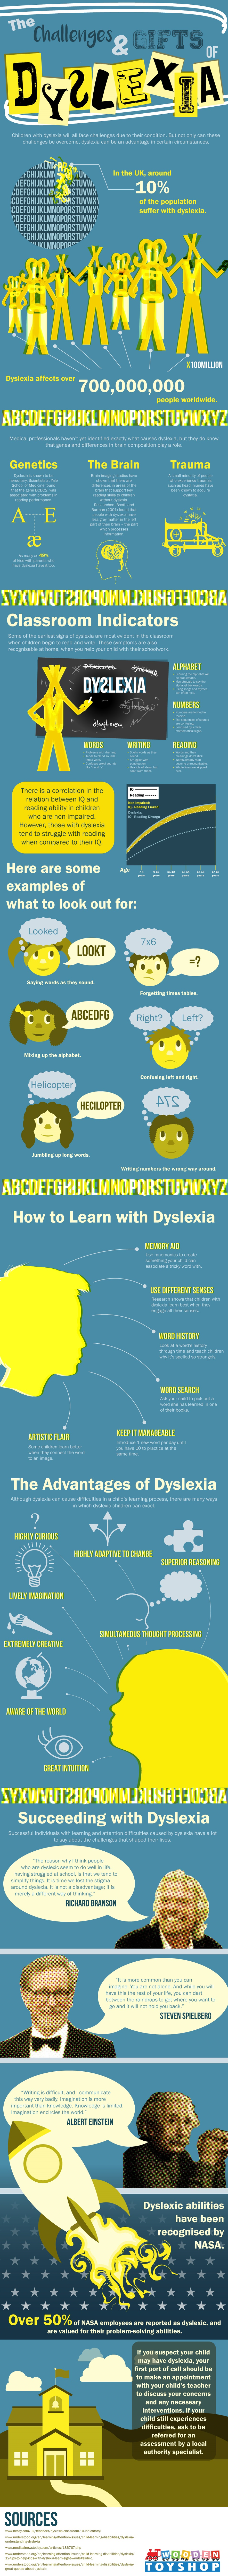 Why Dyslexia is Actually a Super Special Gift! - Infographic